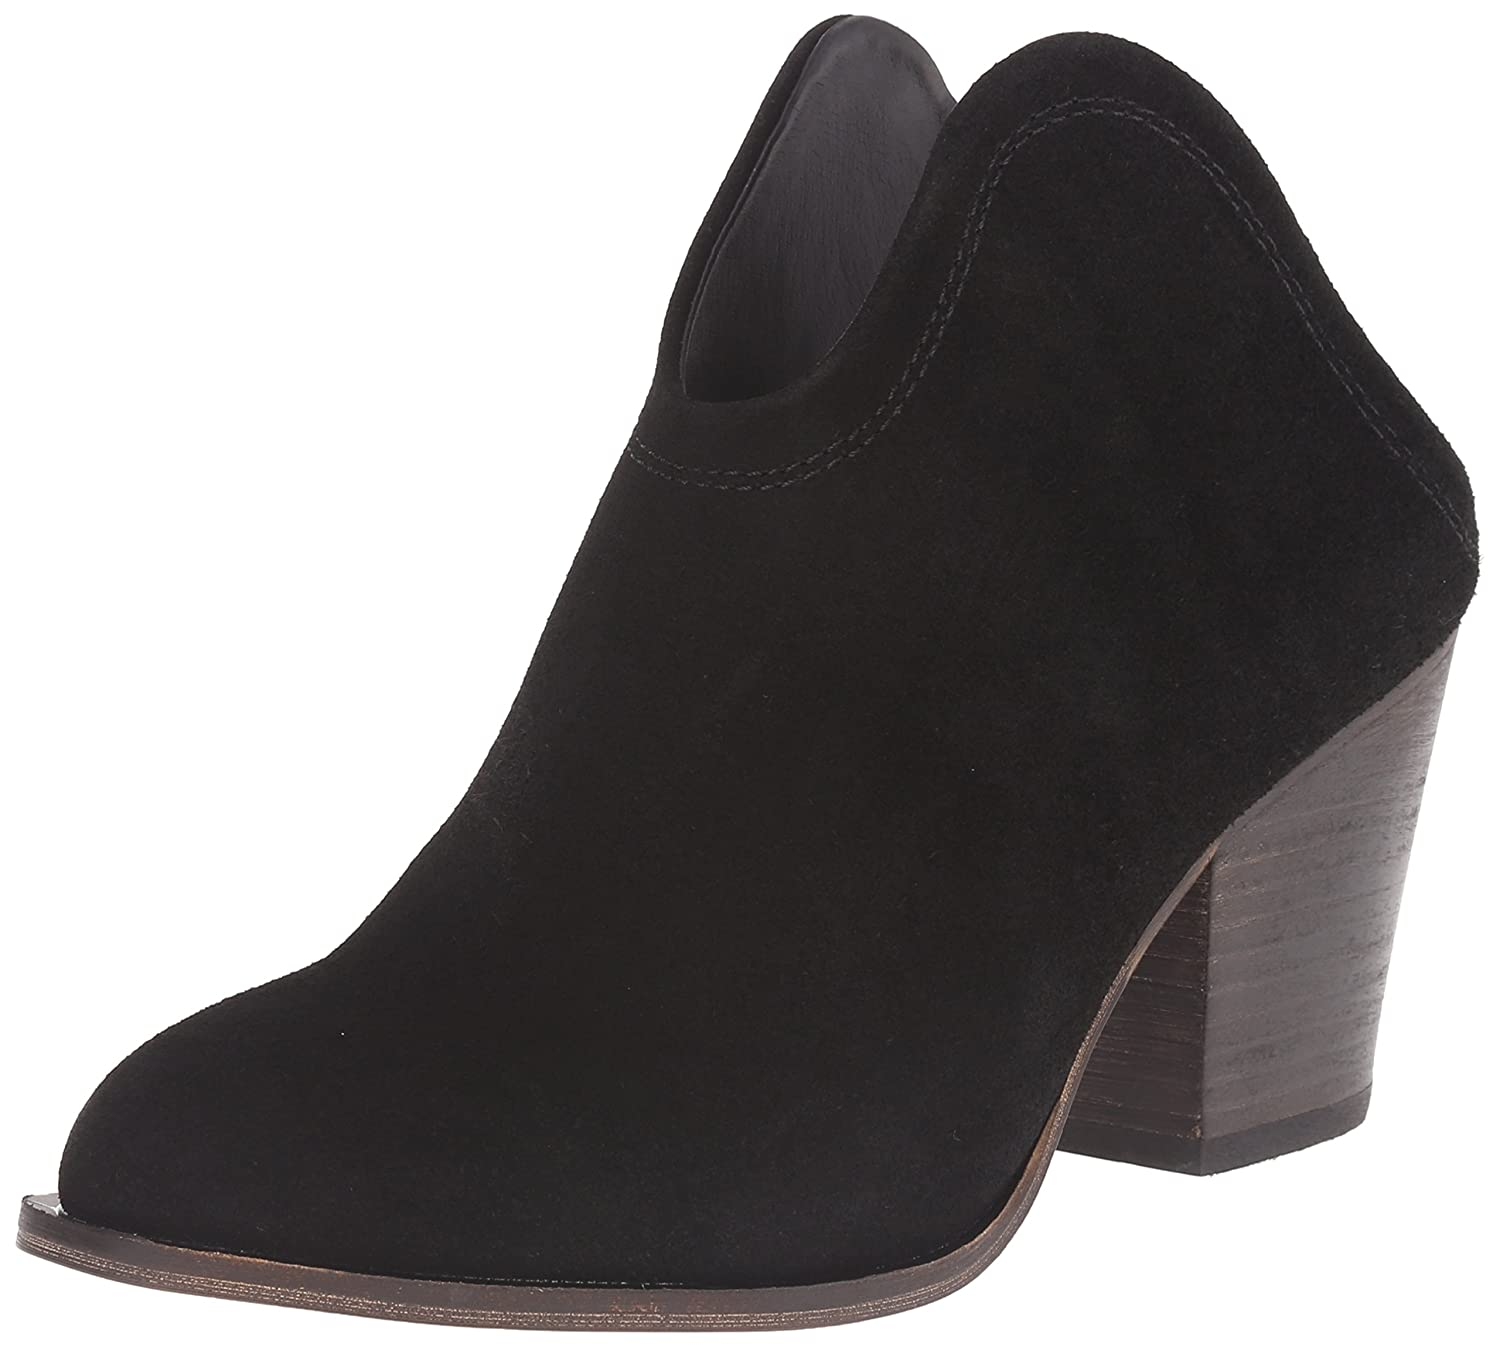 Chinese Laundry Women's Kelso Bootie B011XZINJU 6.5 B(M) US|Black Suede